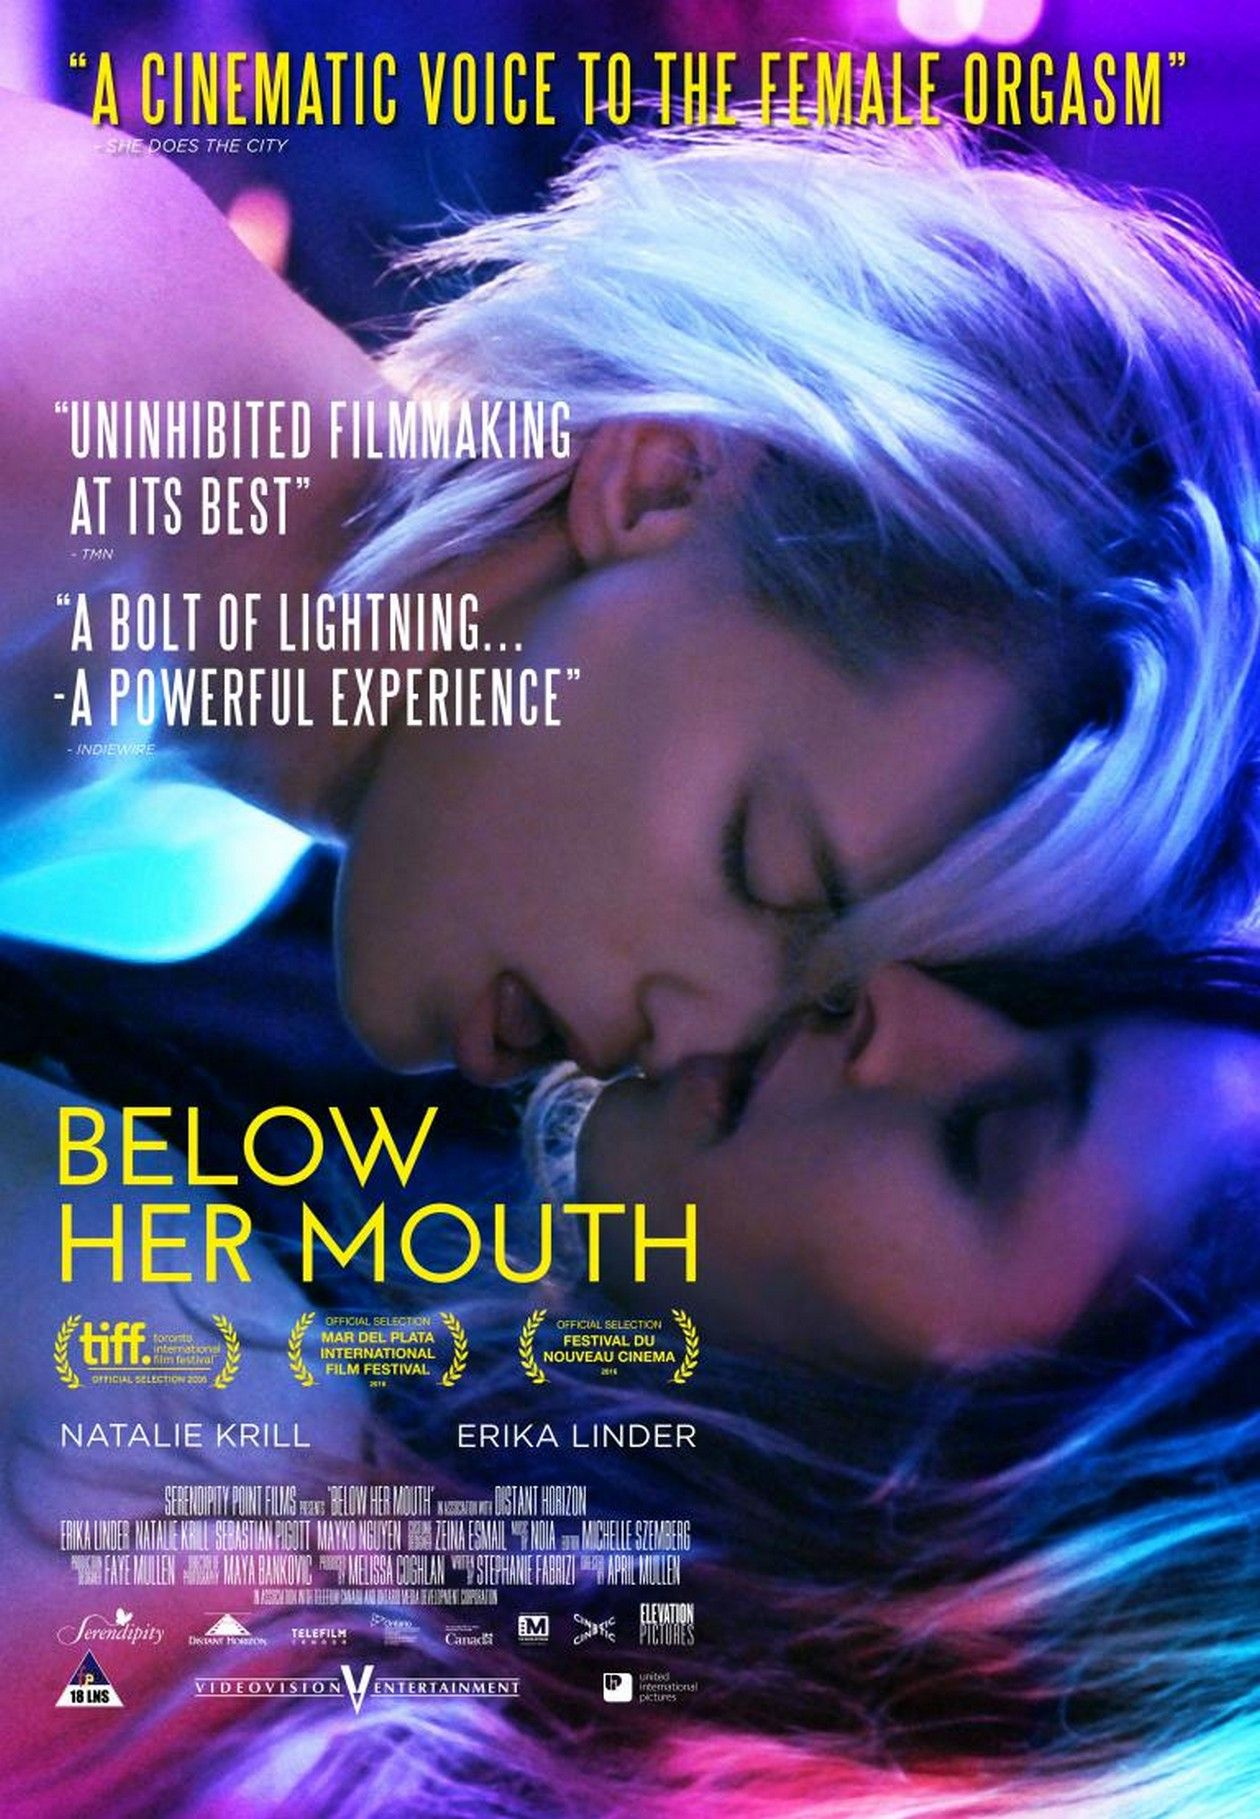 Erika Linder / Natalie Krill actresses | Below her mouth : Dallas / Jasmine | April Mullen 2016 / MOVIE POSTER / AFFICHE FILM